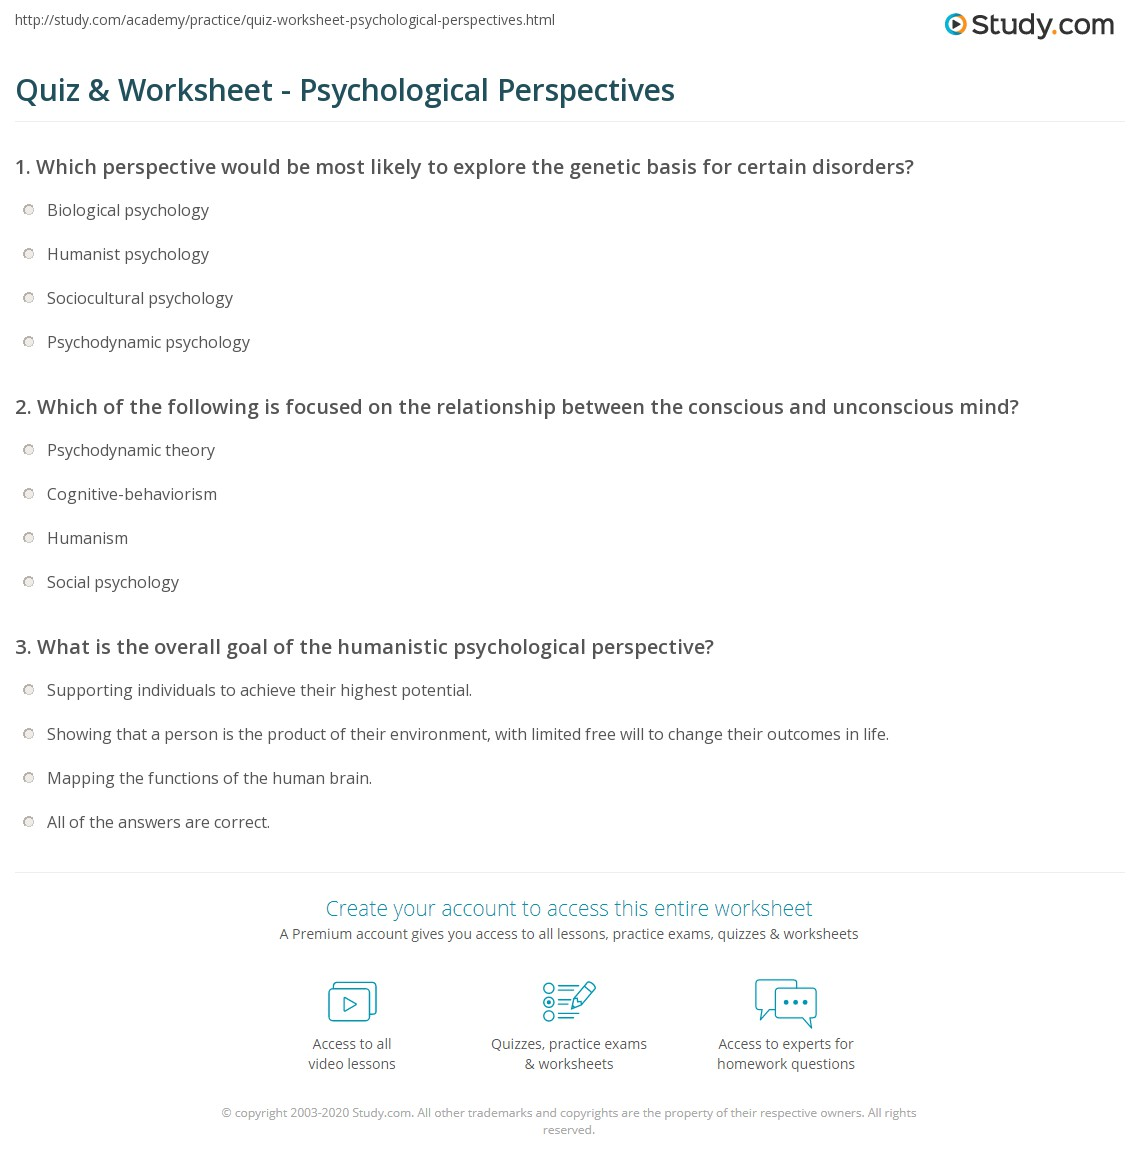 Quiz & Worksheet - Psychological Perspectives | Study.com